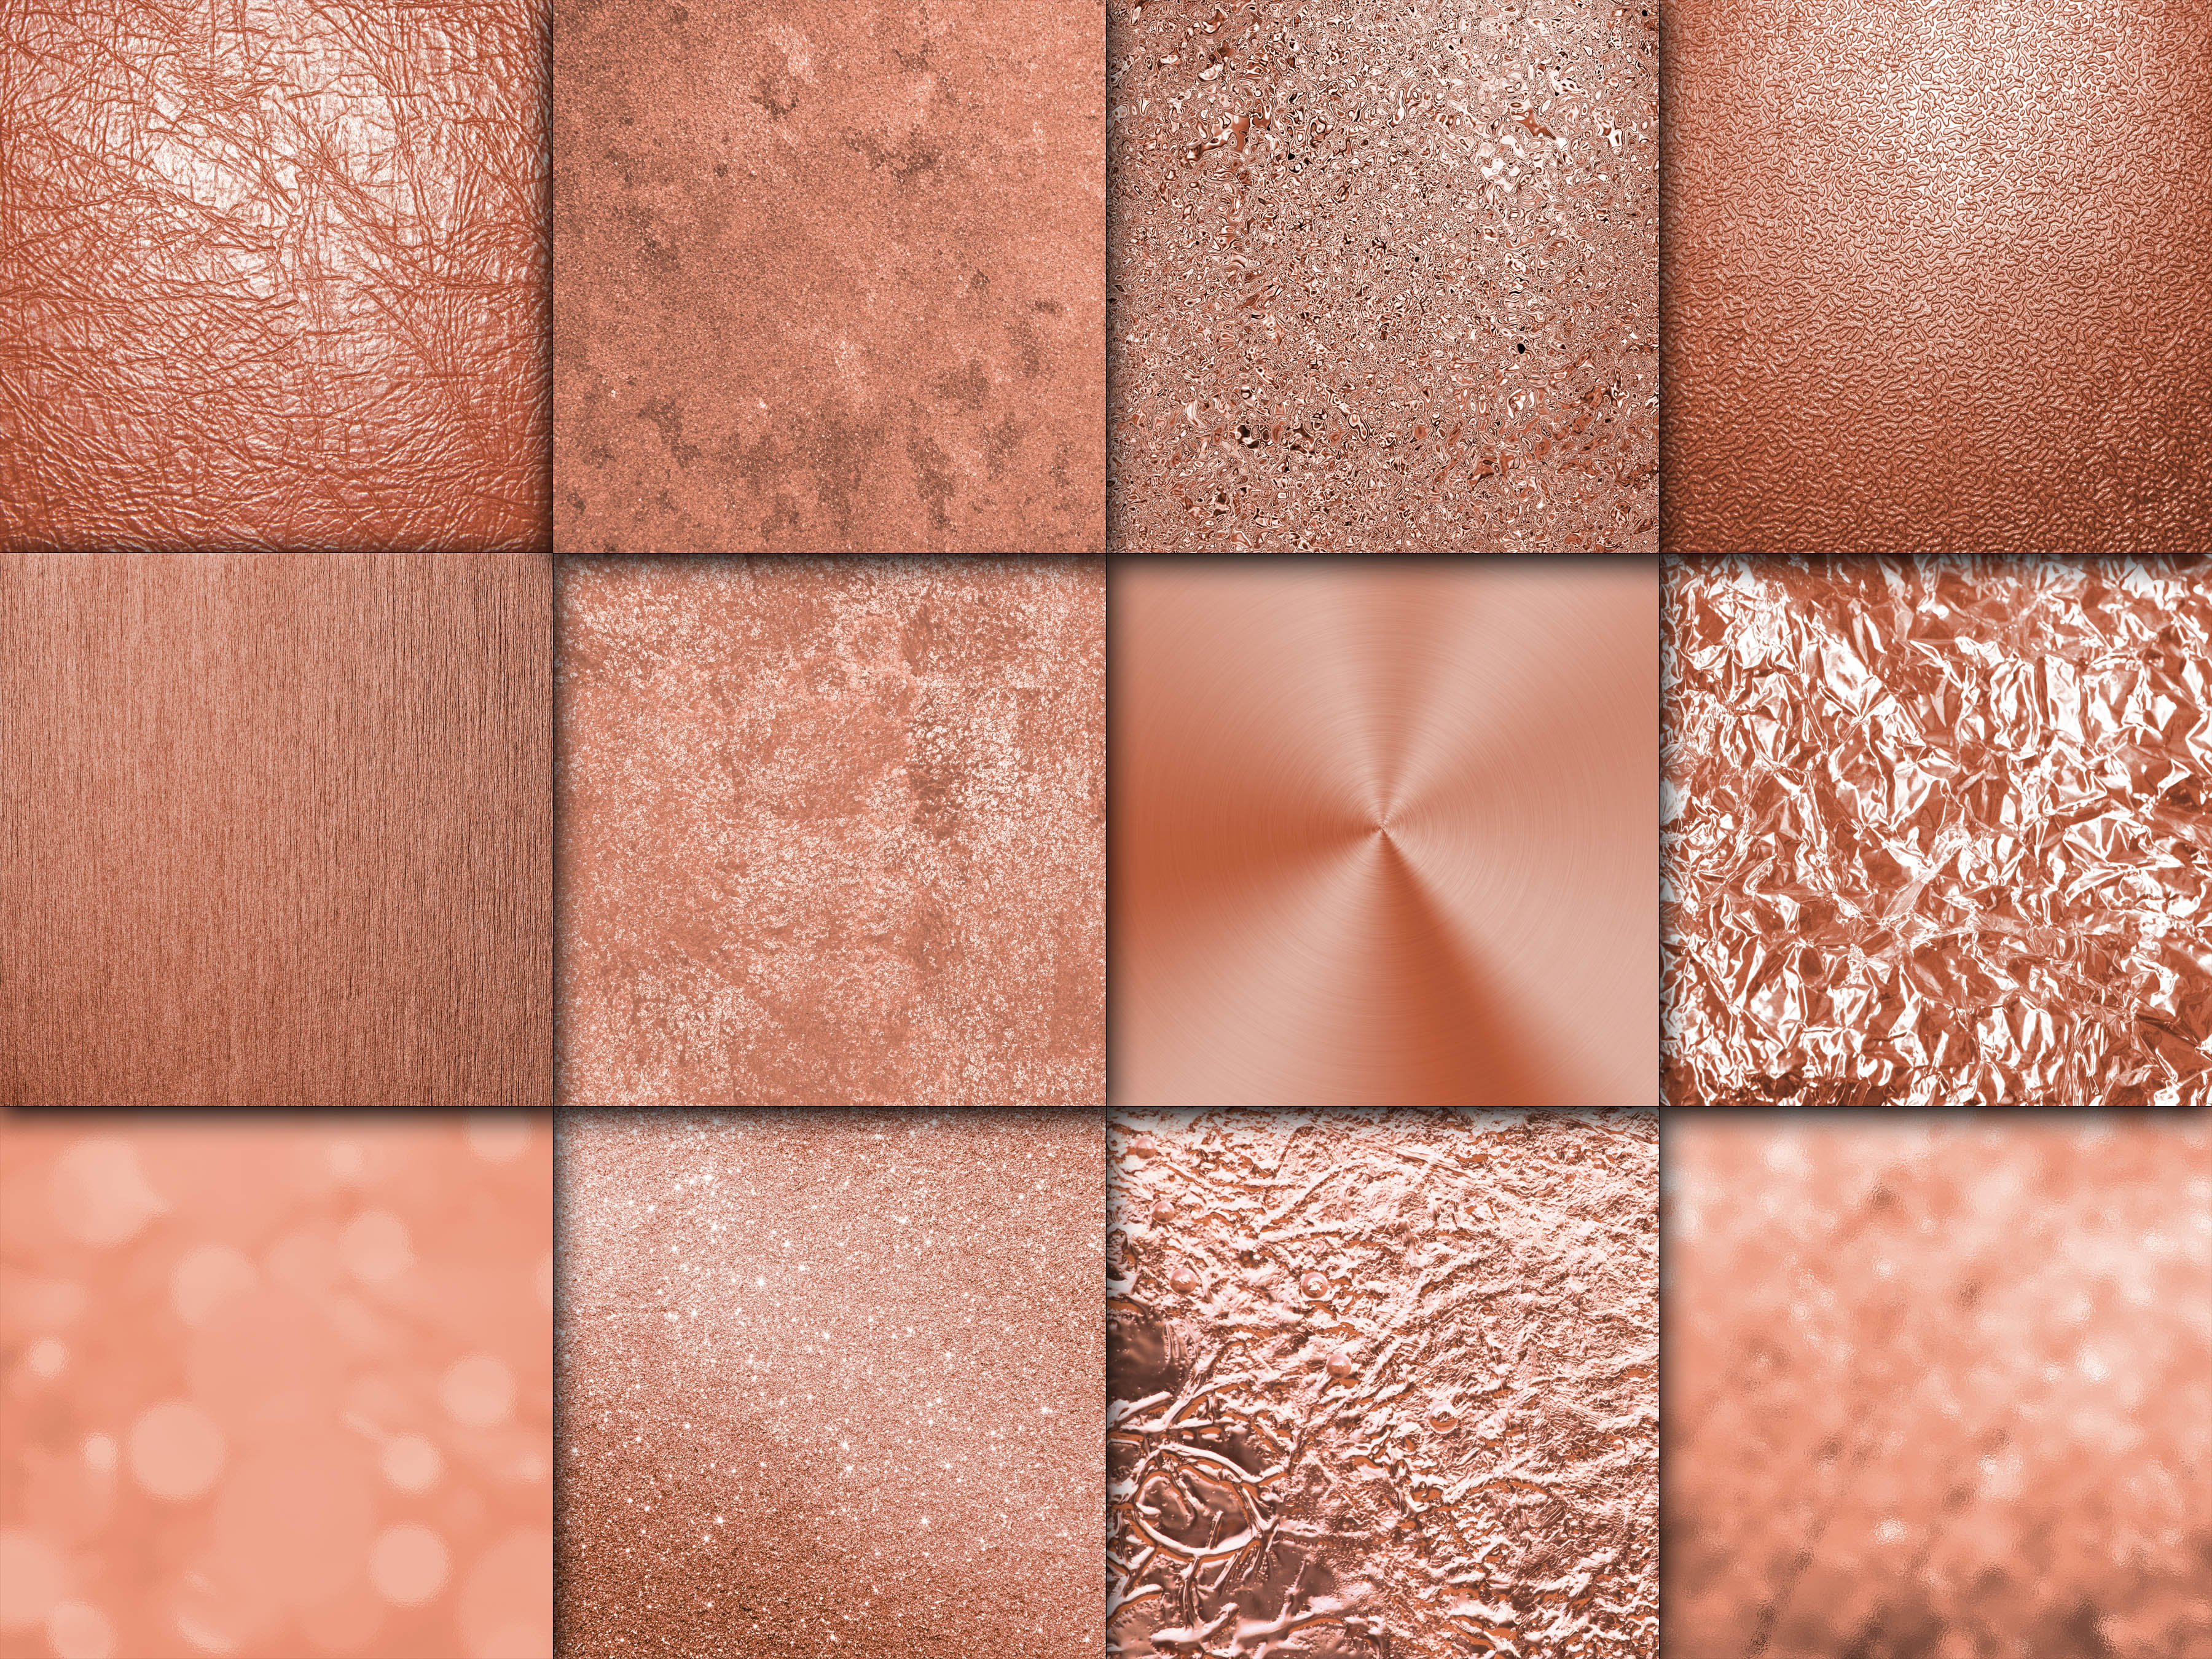 Rose Gold - Gold Digital Paper Textures Graphic Backgrounds By oldmarketdesigns - Image 2